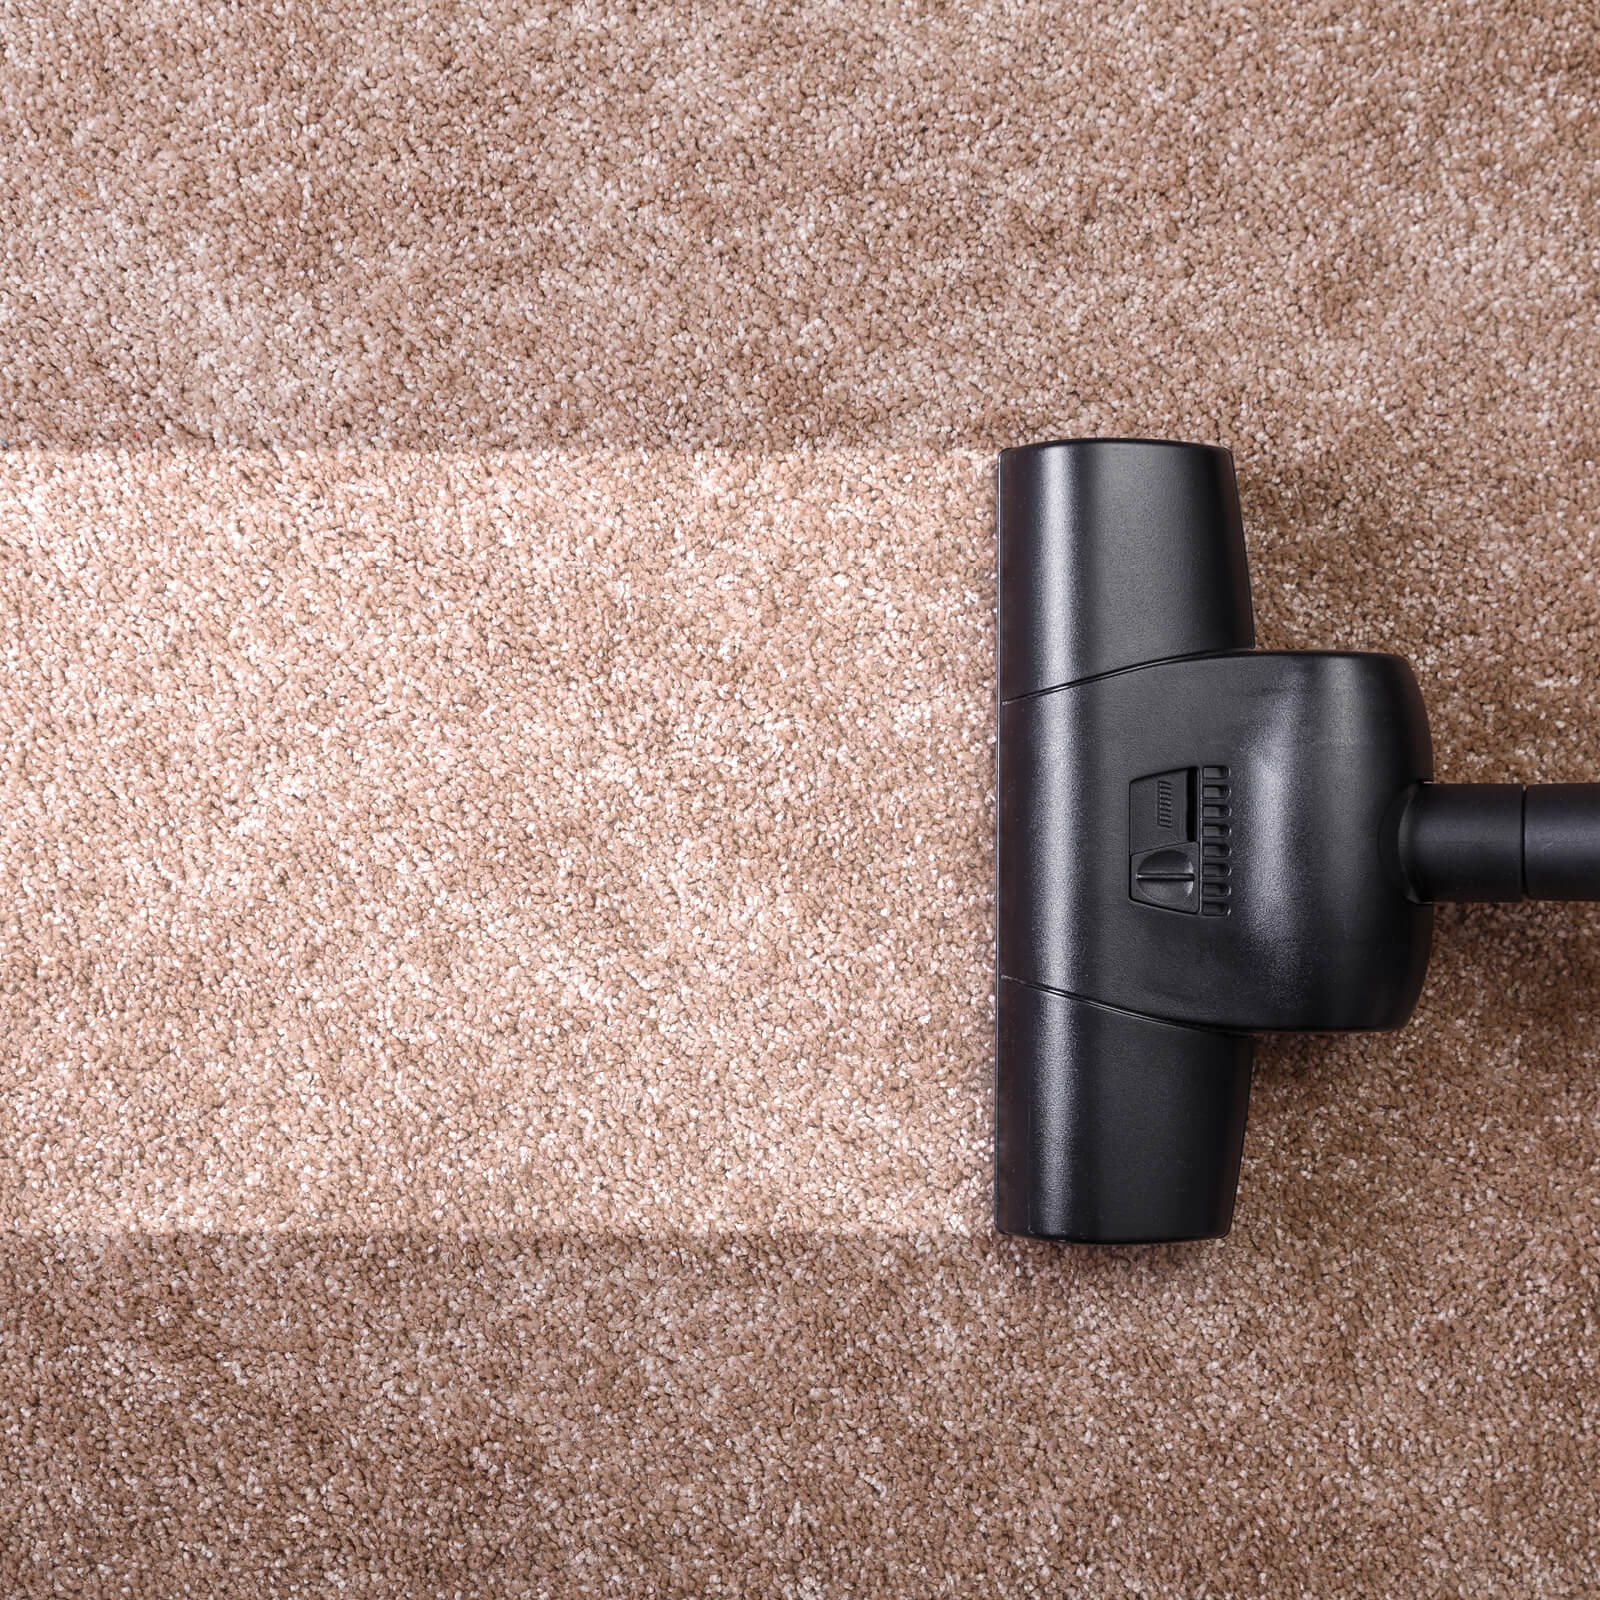 Cleaning laminate floor | Home Lumber & Supply